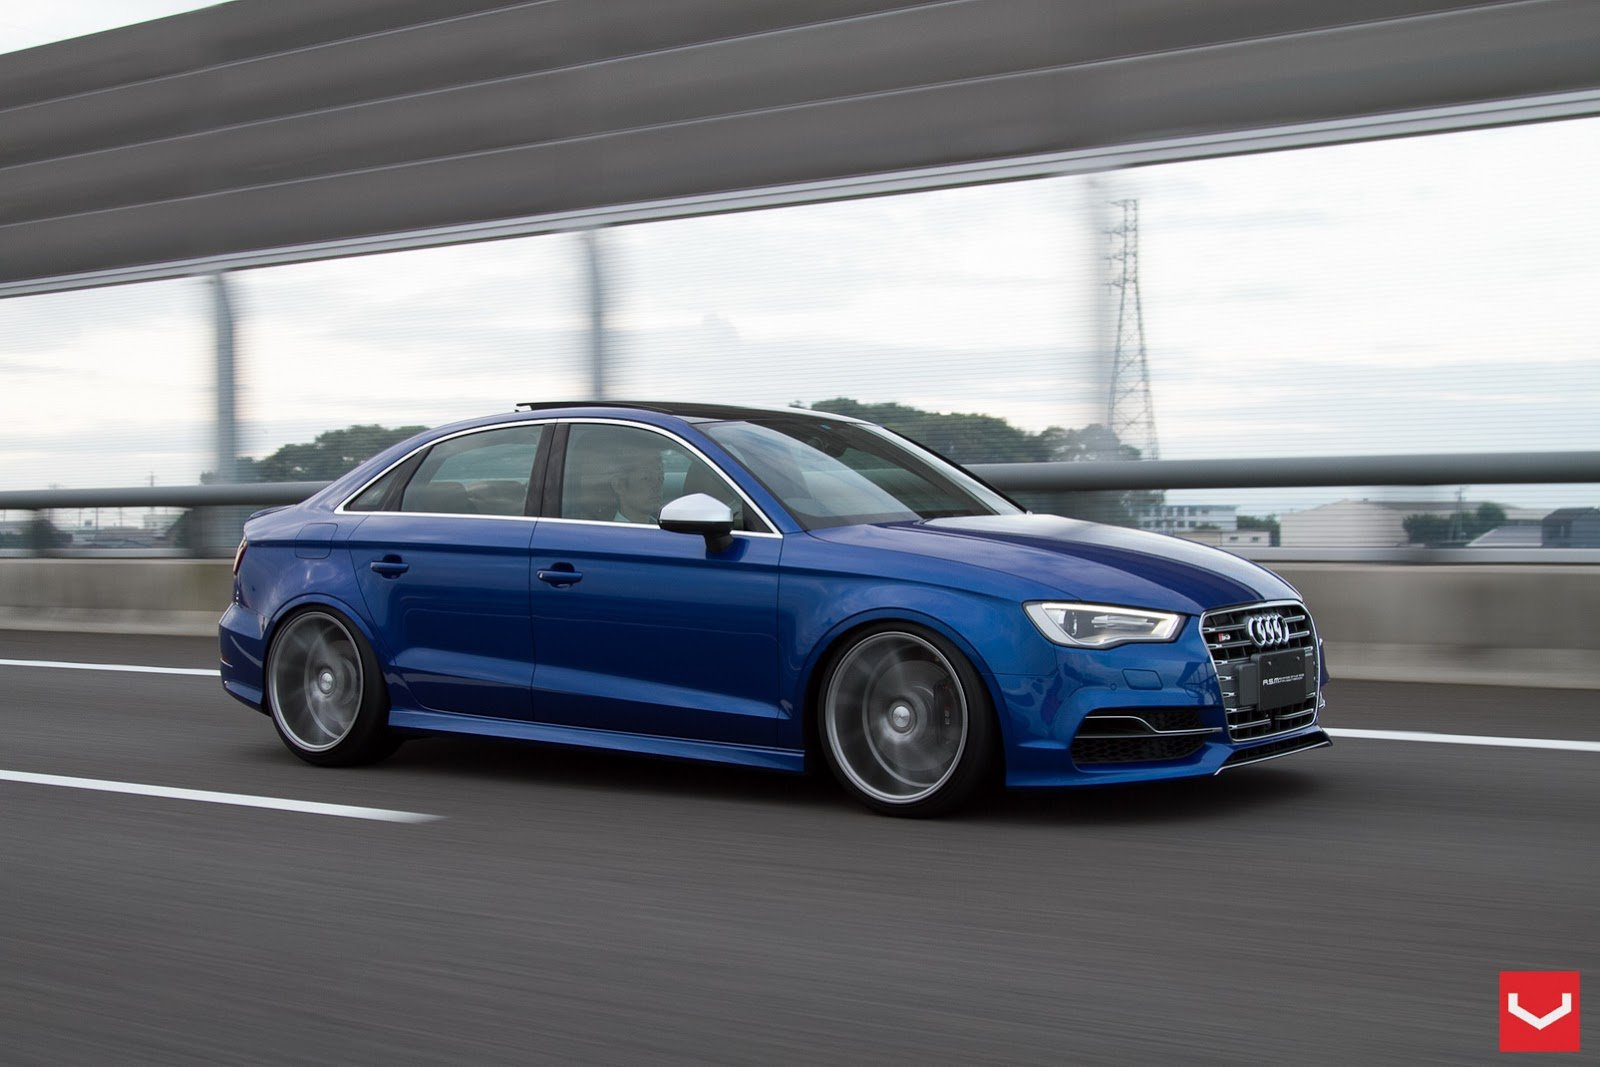 audi s3 sedan vossen wheels tuning wallpaper 1600x1067 440432 wallpaperup. Black Bedroom Furniture Sets. Home Design Ideas